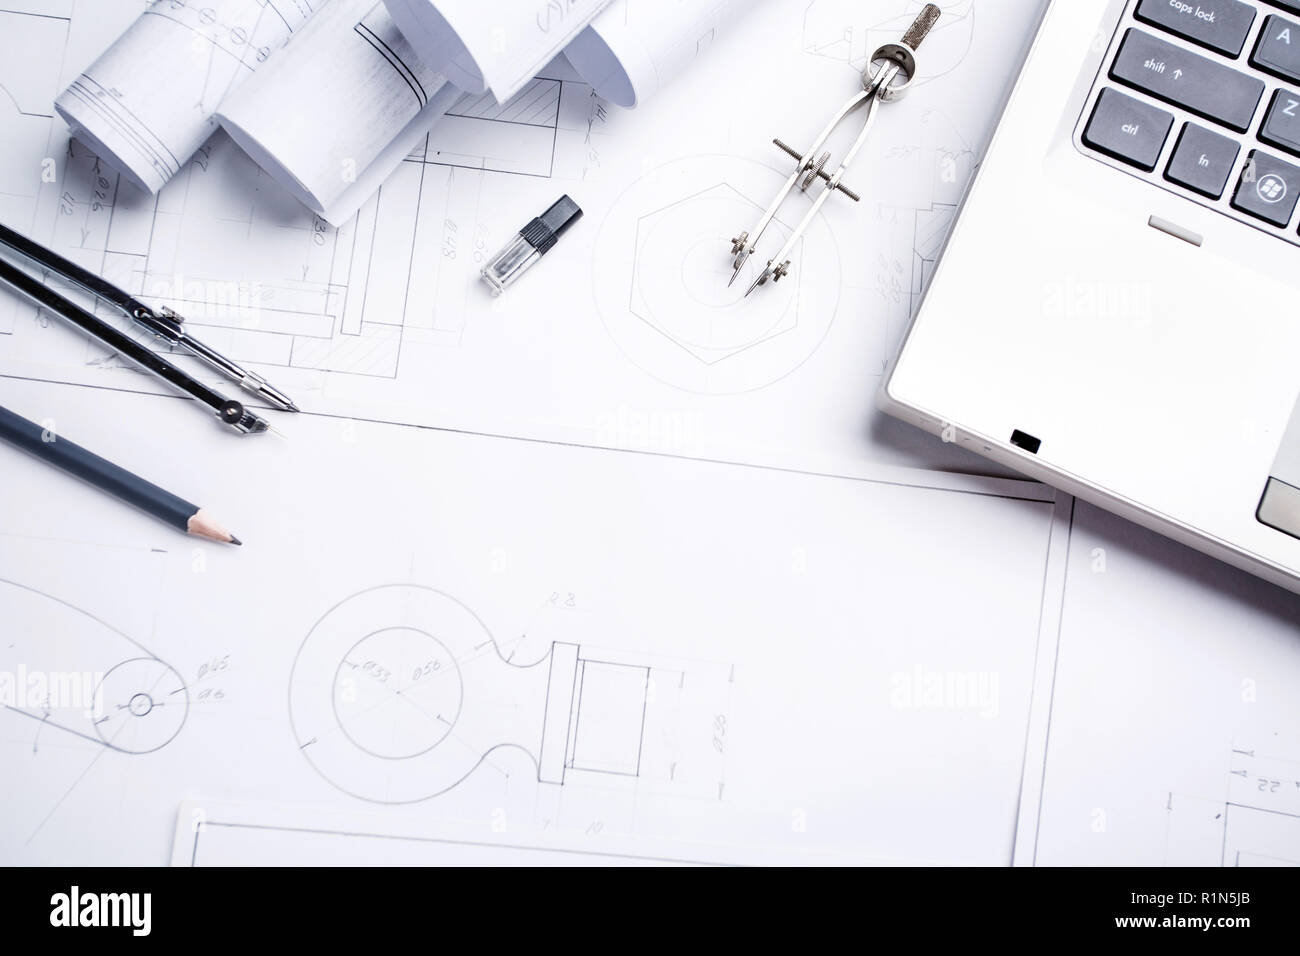 A notebook, a pencil, a compass and rolls with drawings on the table in the architect - Stock Image